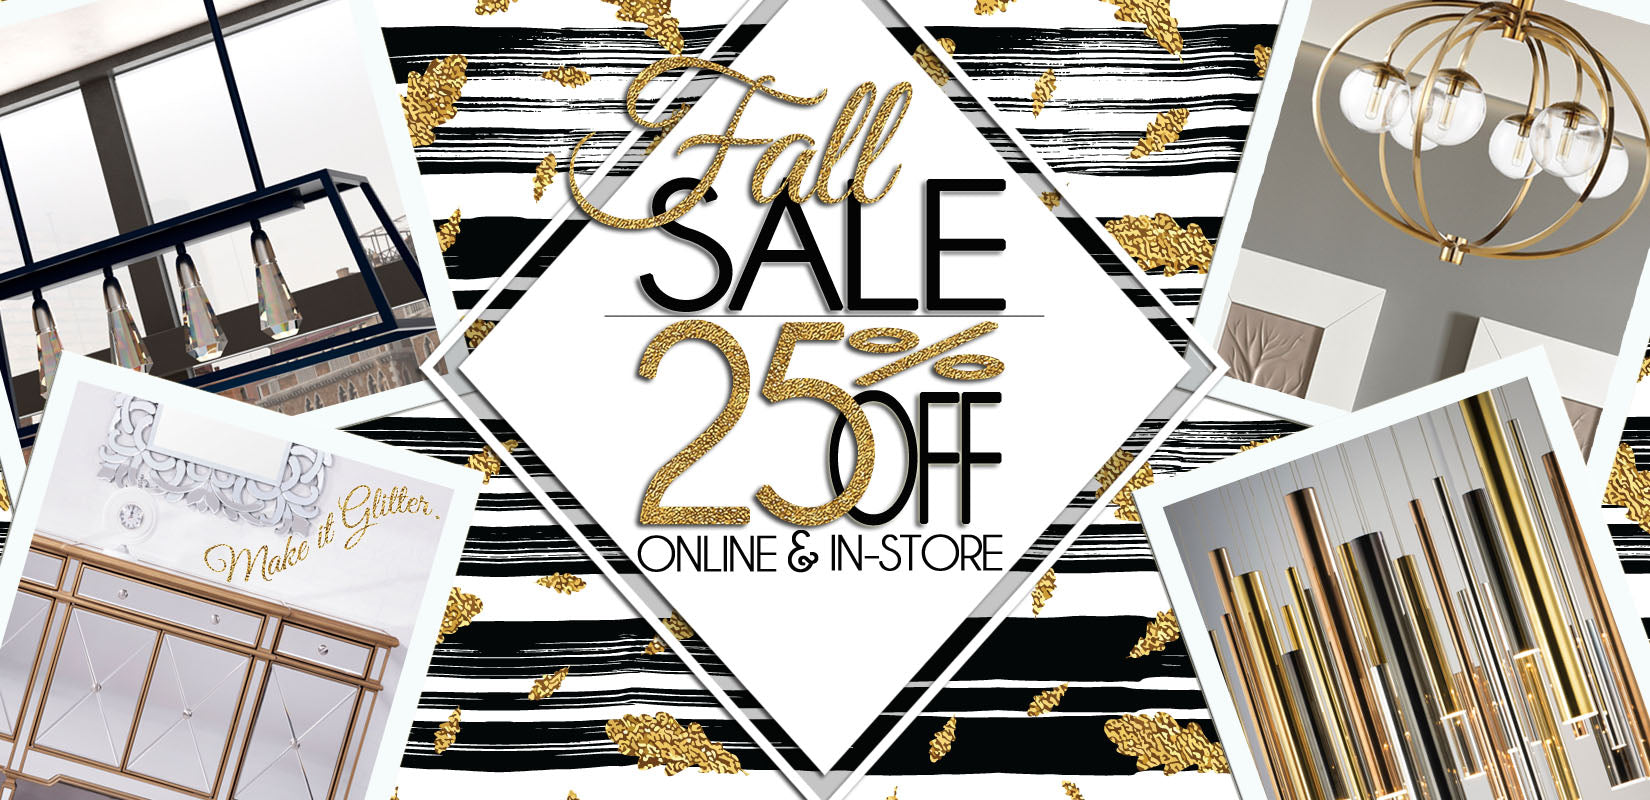 Shop Our Fall 2017 Sale 25% off In Store and Online!